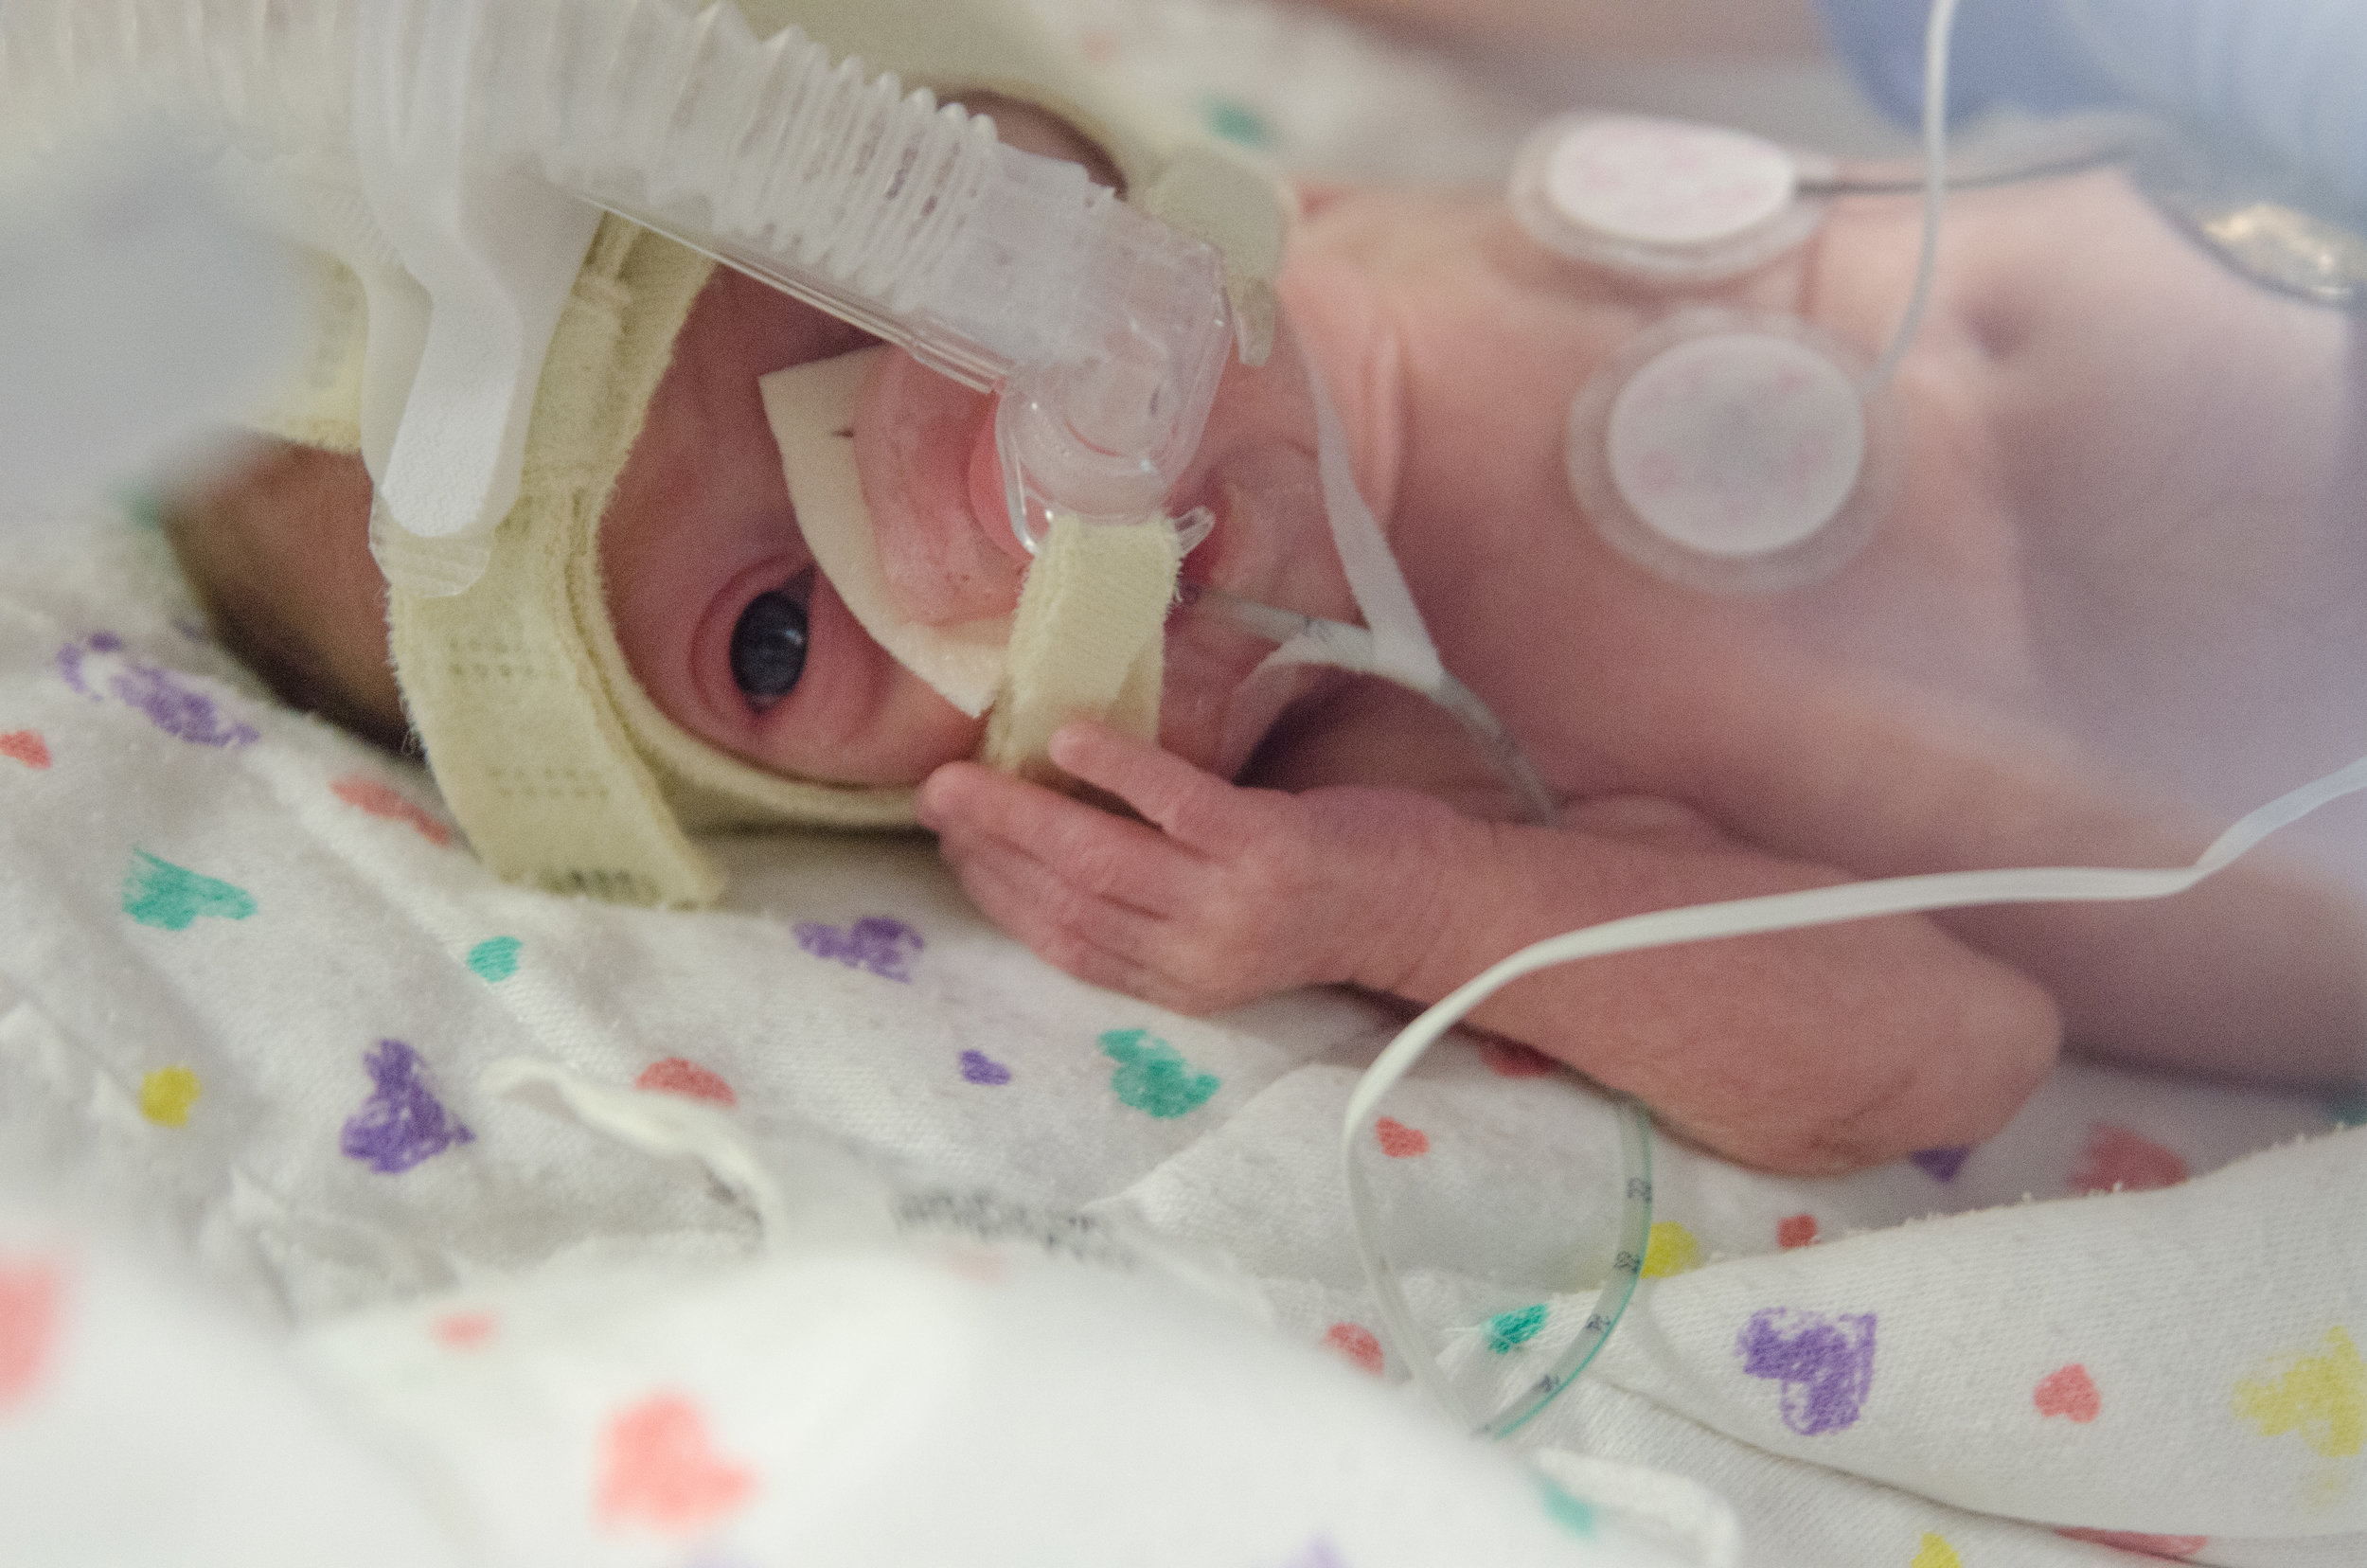 isolating your preemie during flu & rsv season - she got guts